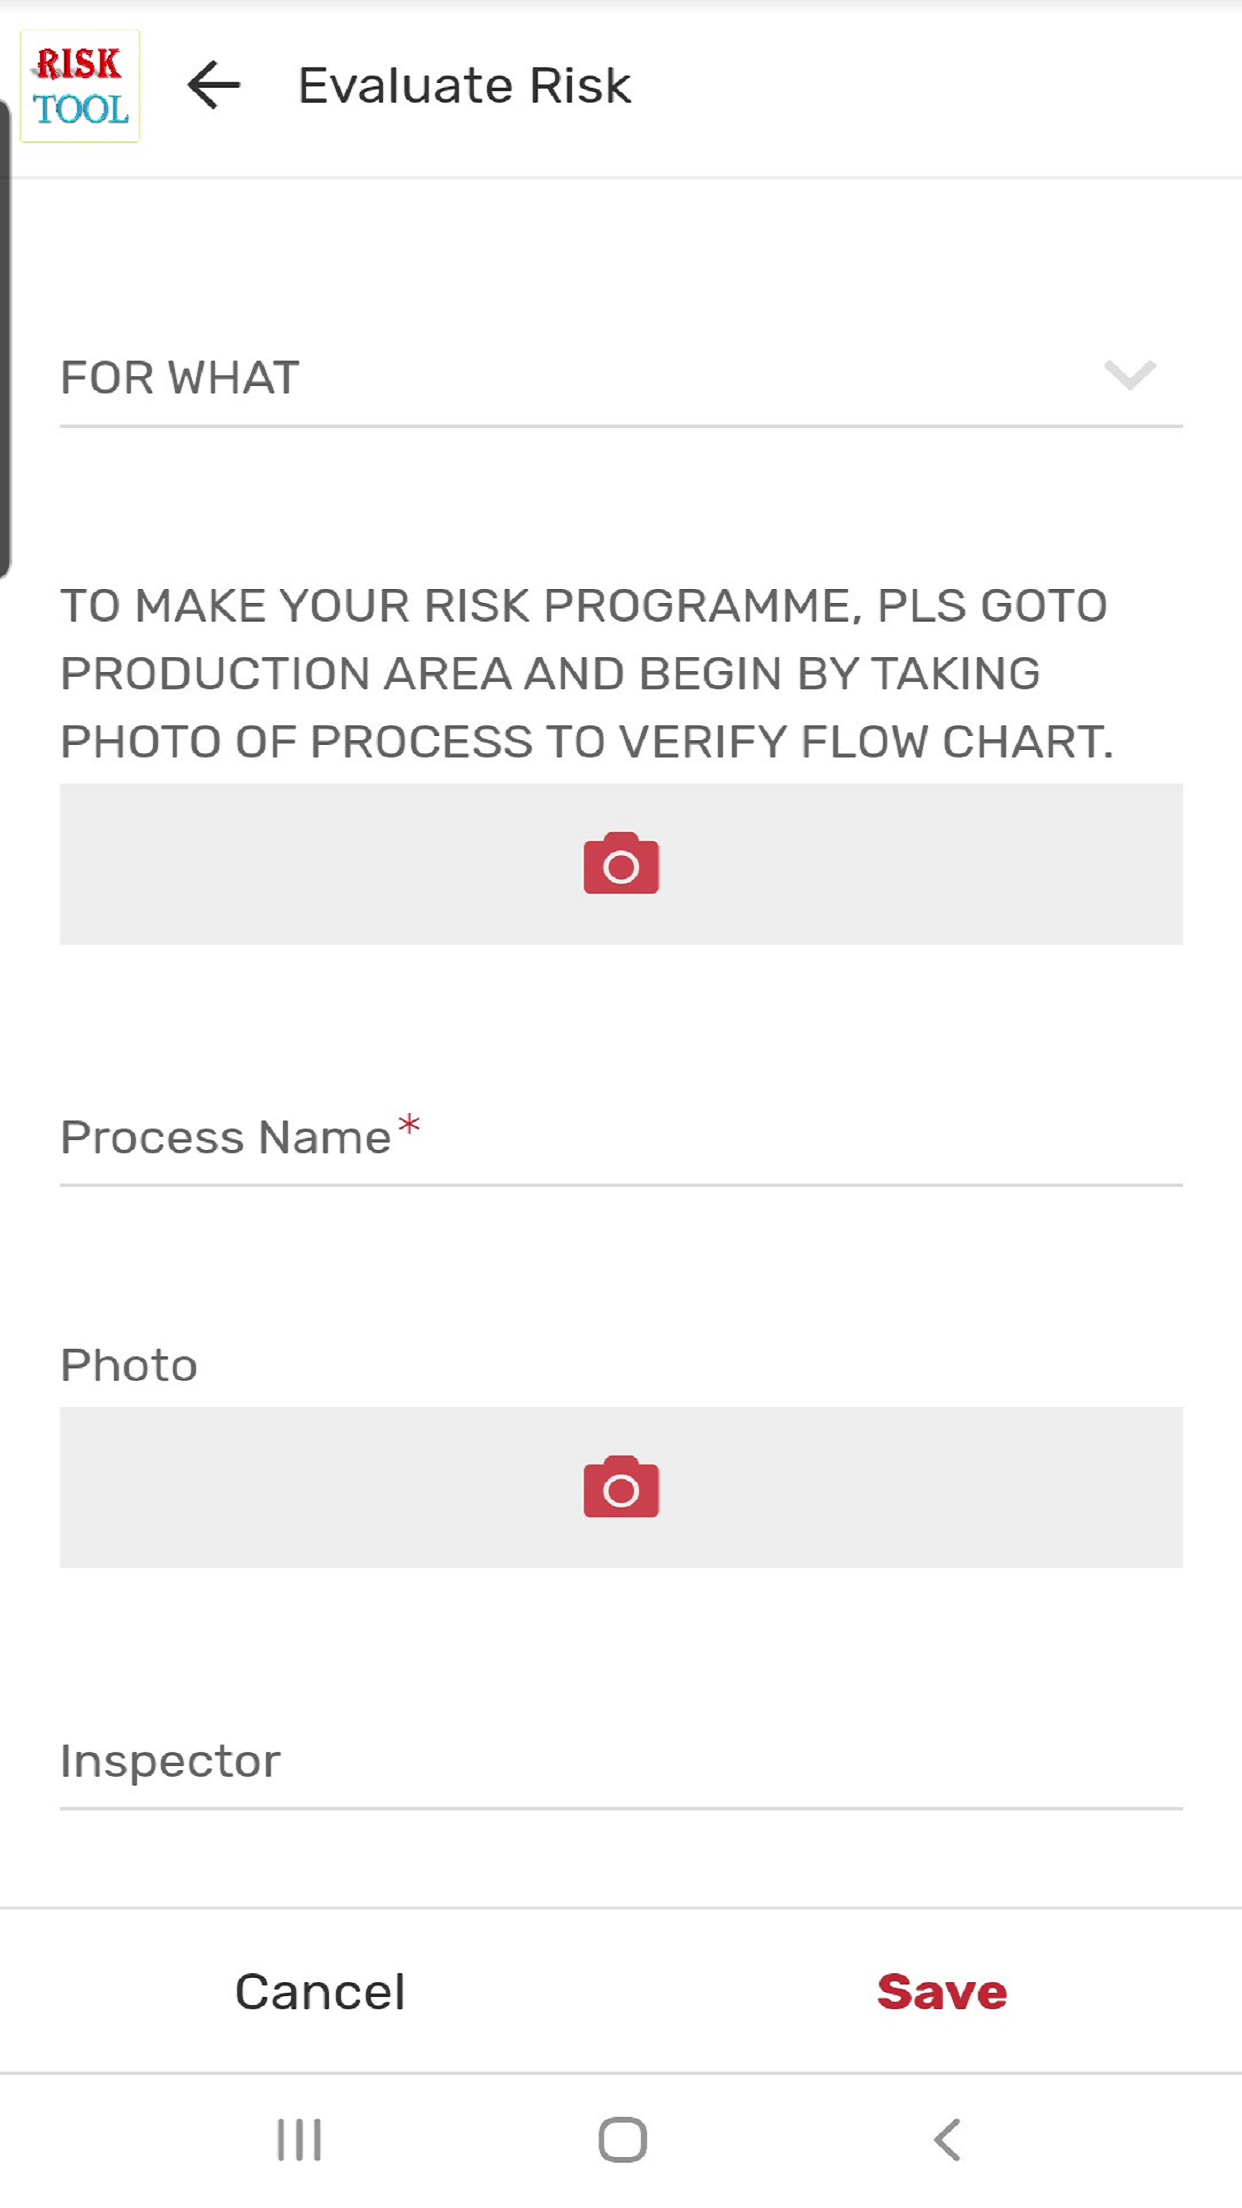 RISK Tool For Safety evaluation